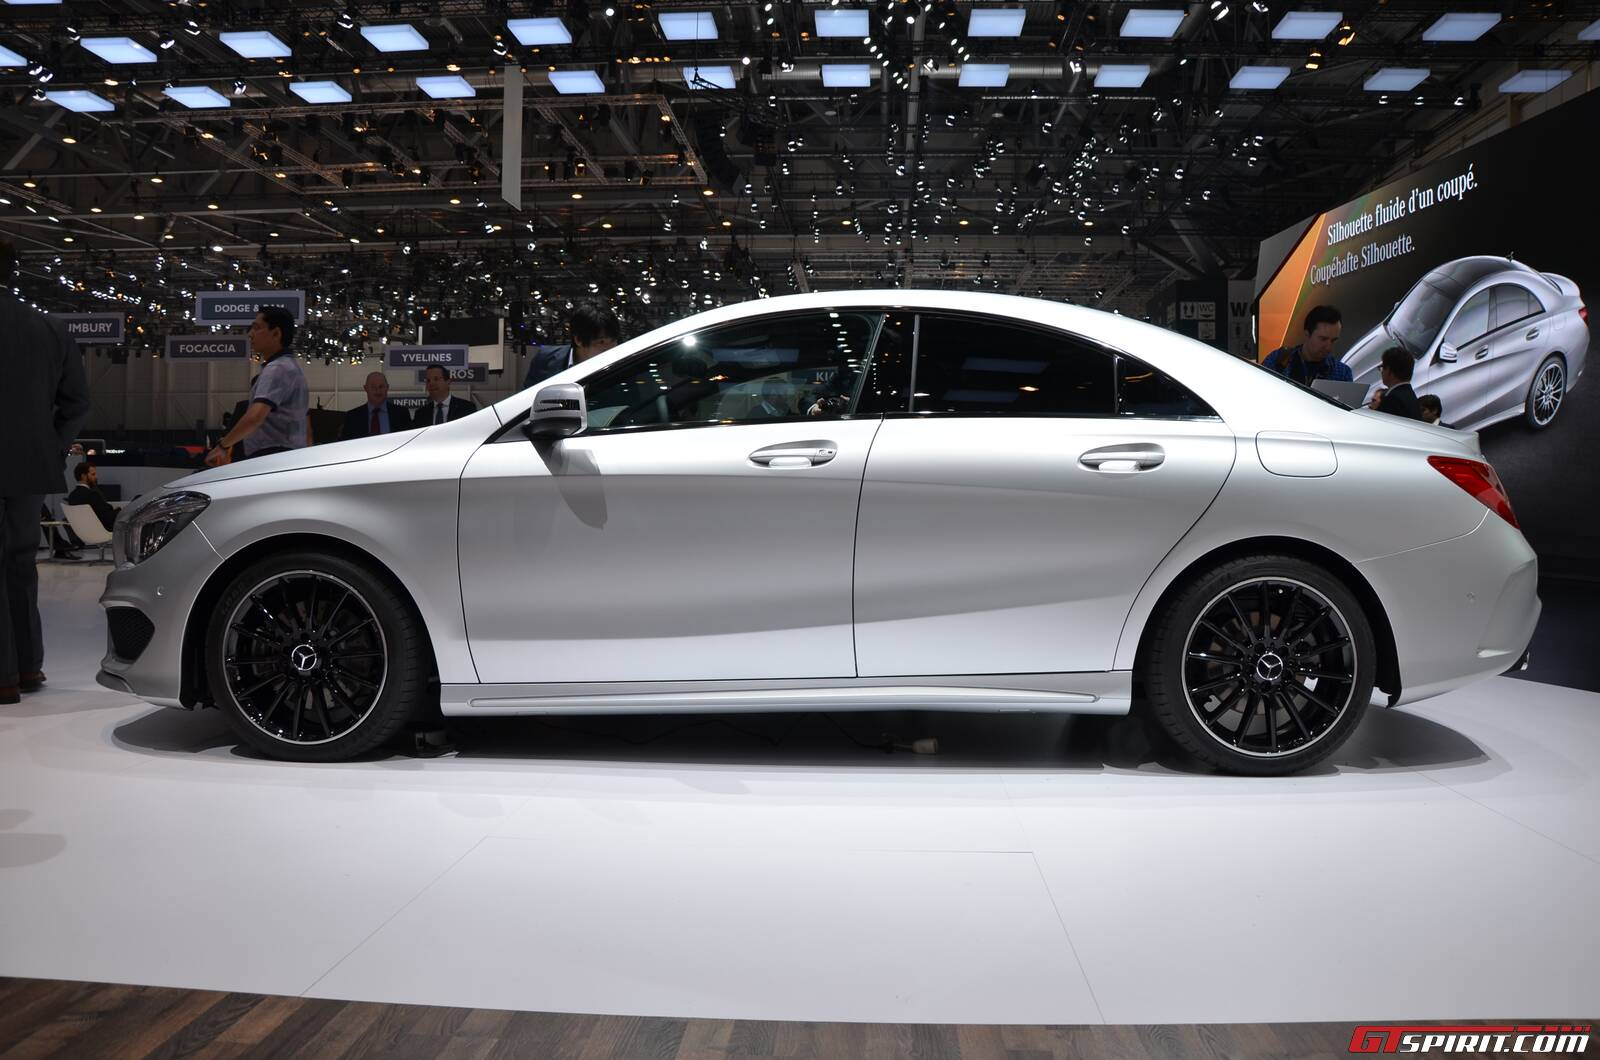 All Types 2013 mercedes cla : Geneva 2013: Mercedes-Benz CLA-Class Edition 1 - GTspirit